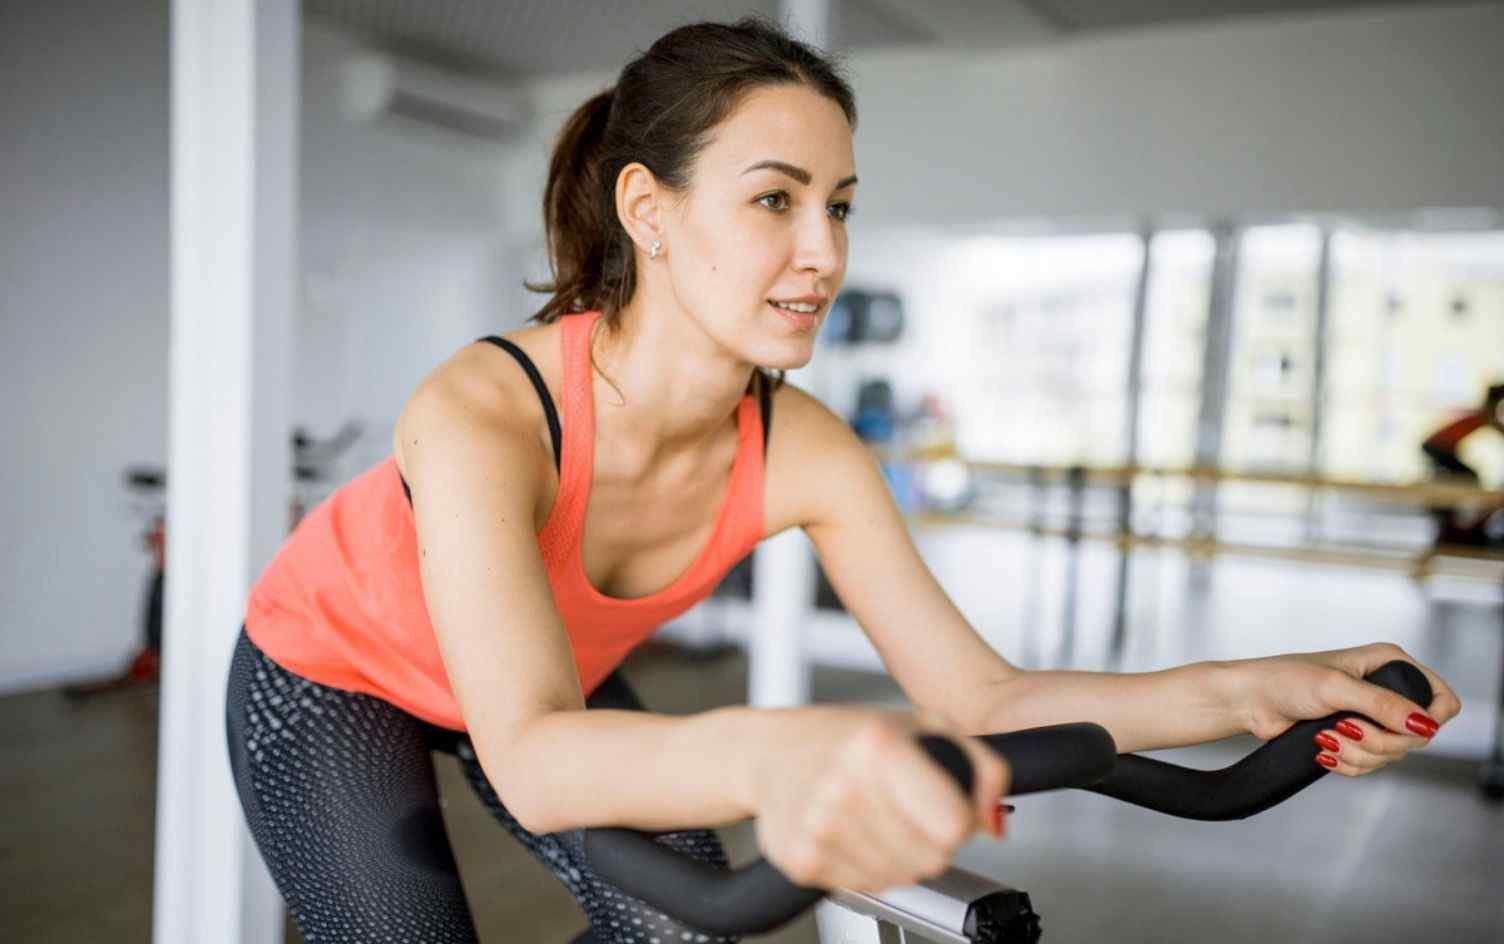 Benefits of stationary bike for weight loss